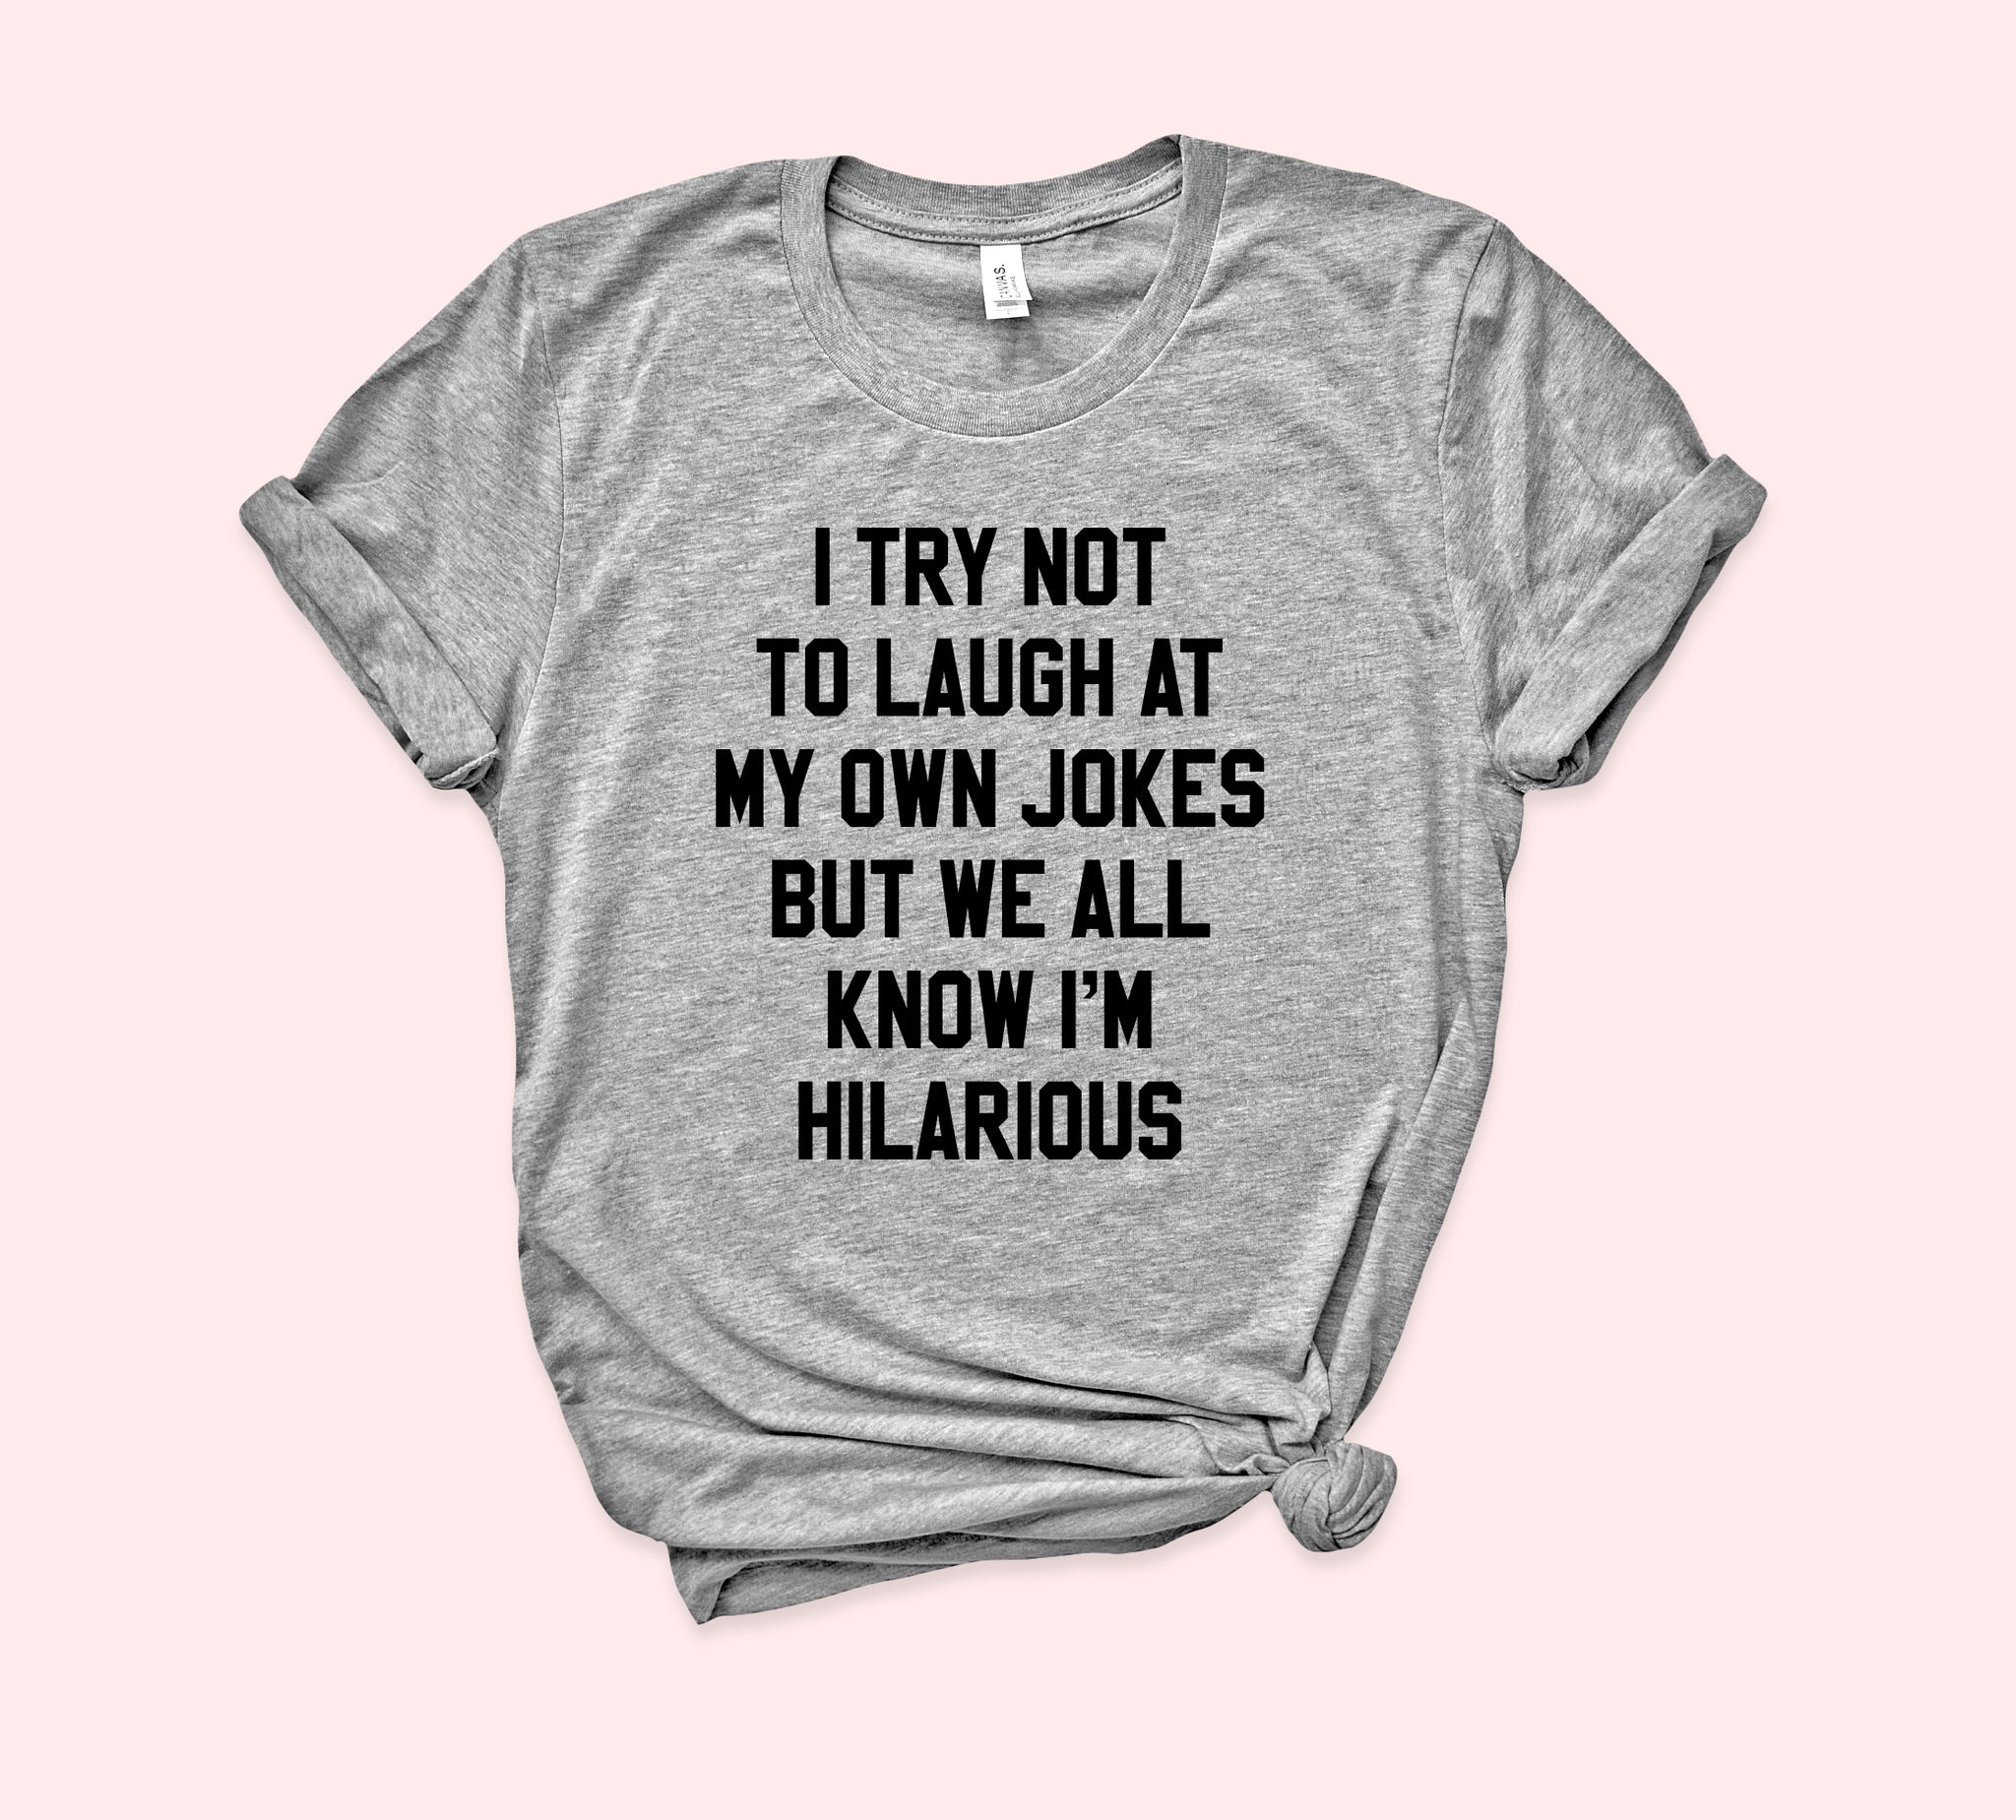 We All Know I'm Hilarious Shirt